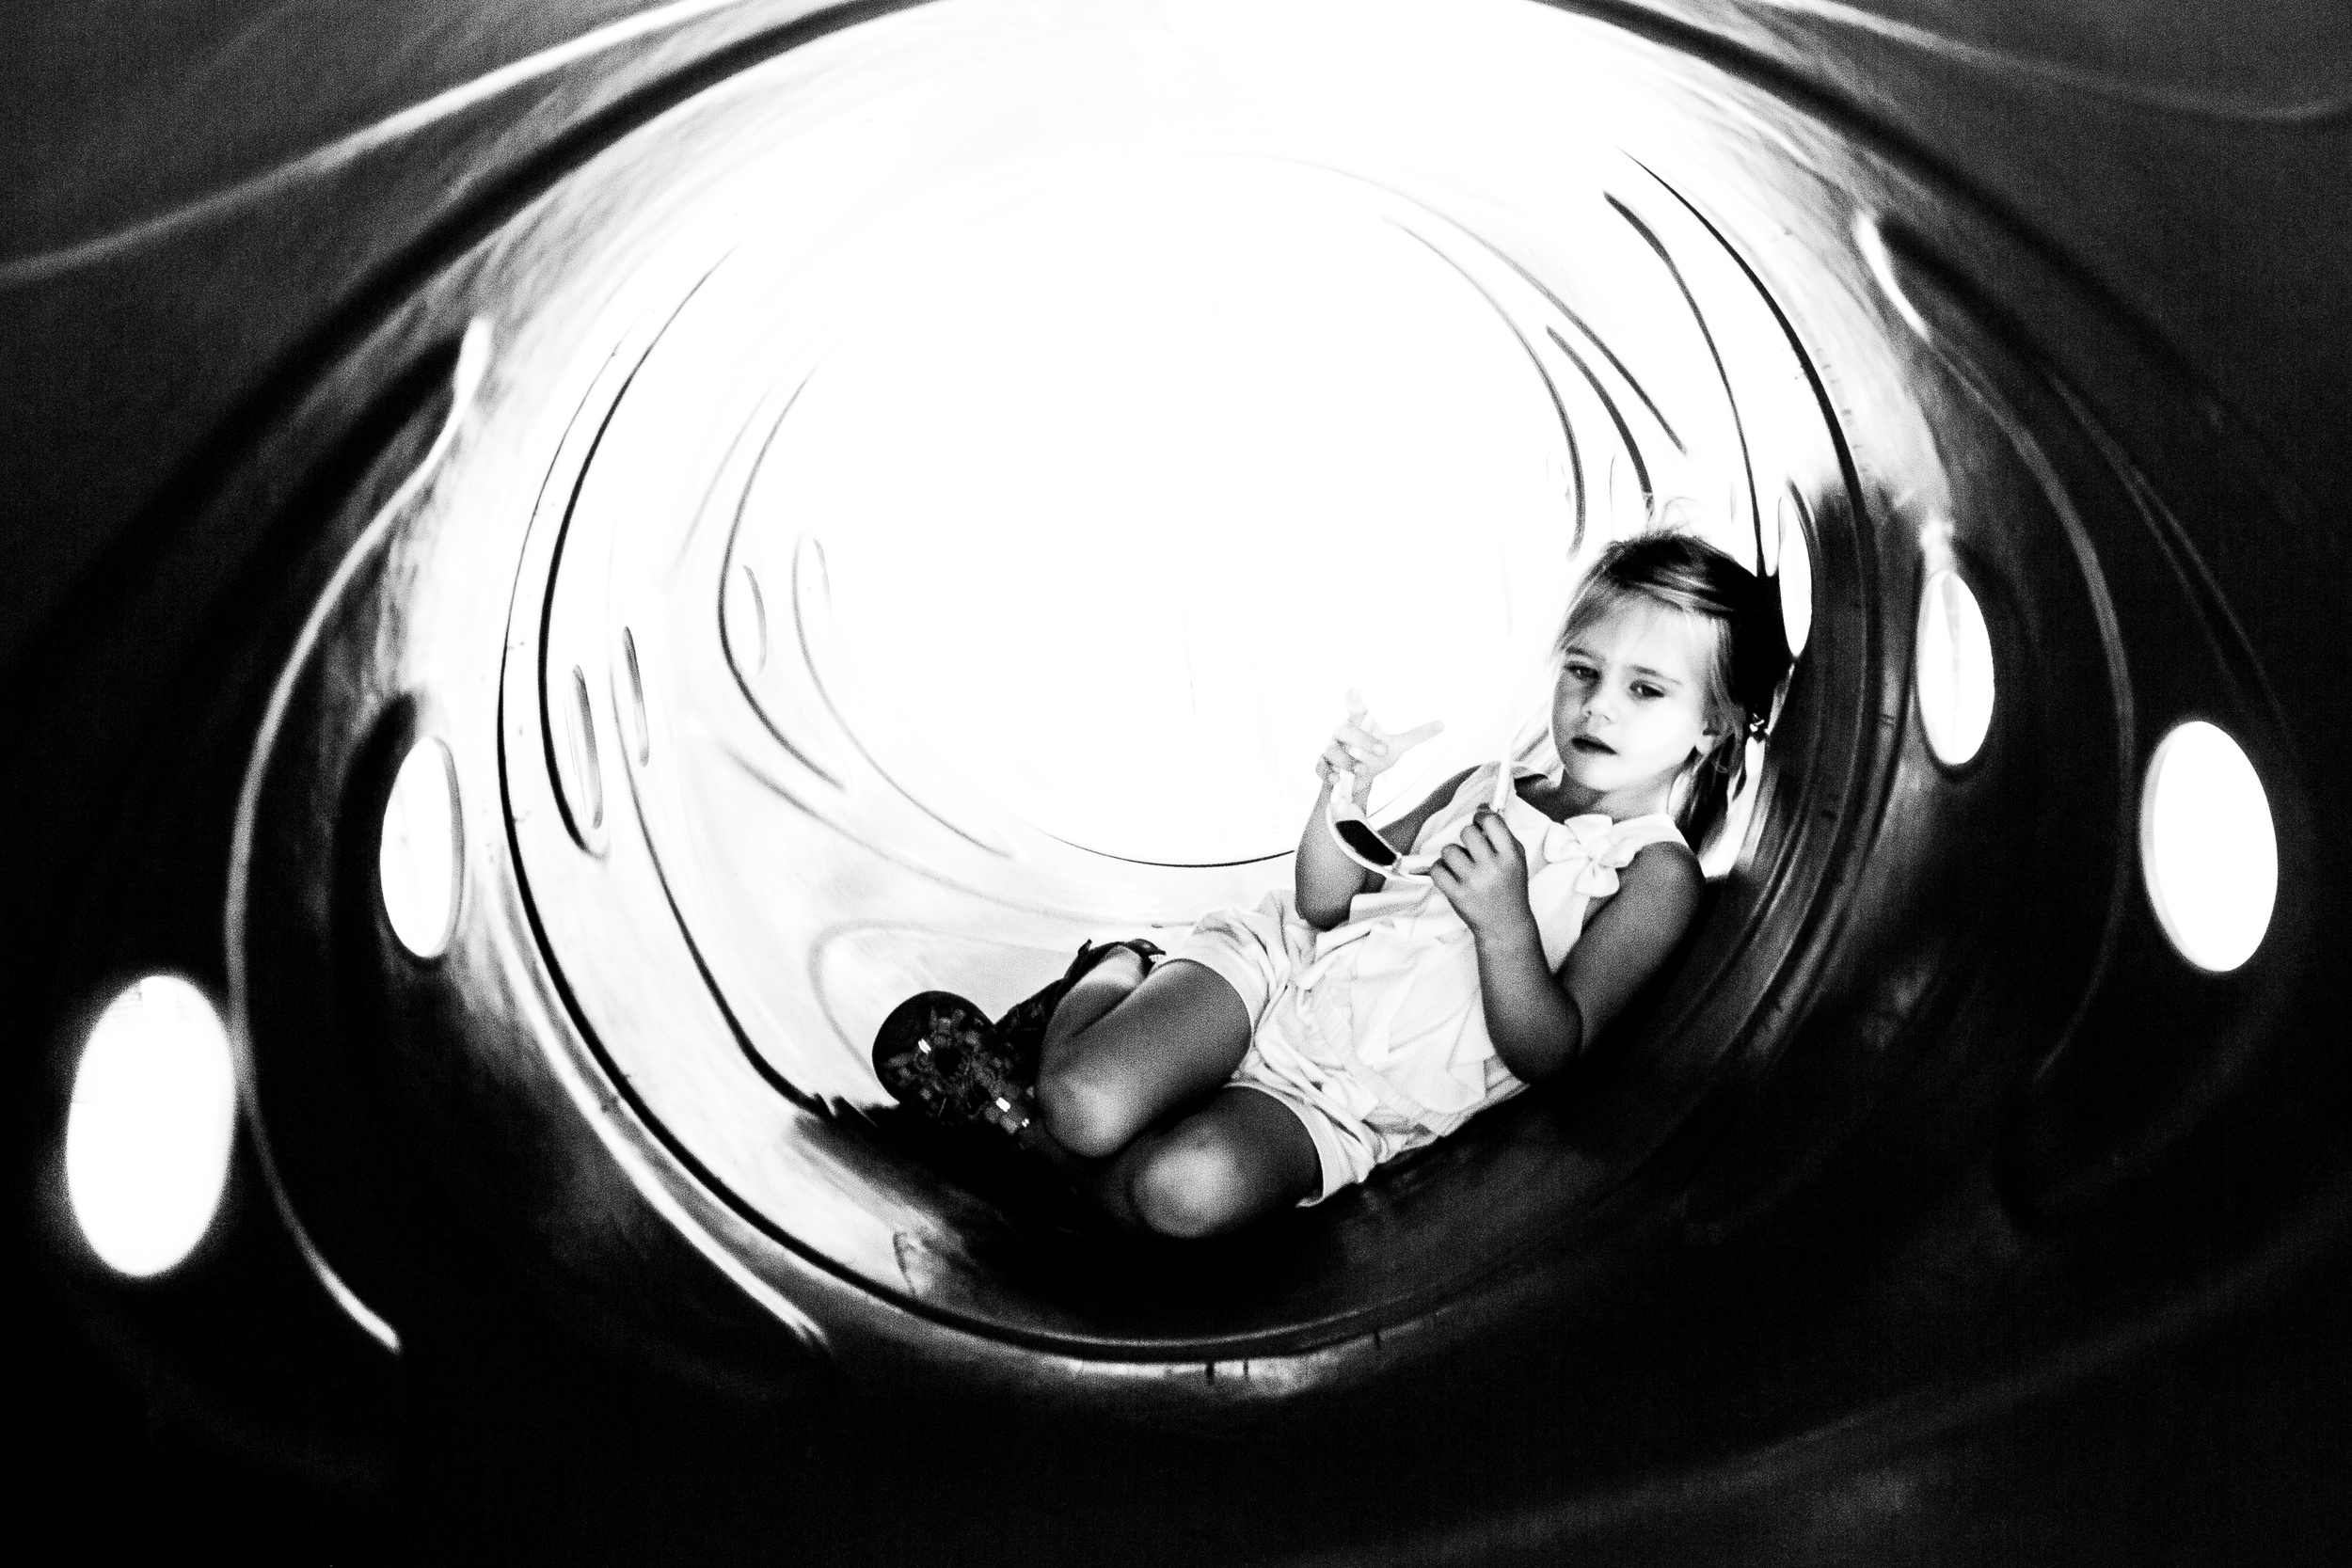 ART OF PLAY-33 was Honorable Mention, VISIONS 2013  /  Finalist in Monocrome at Int'l Ozone Zone Photo Salon 2013